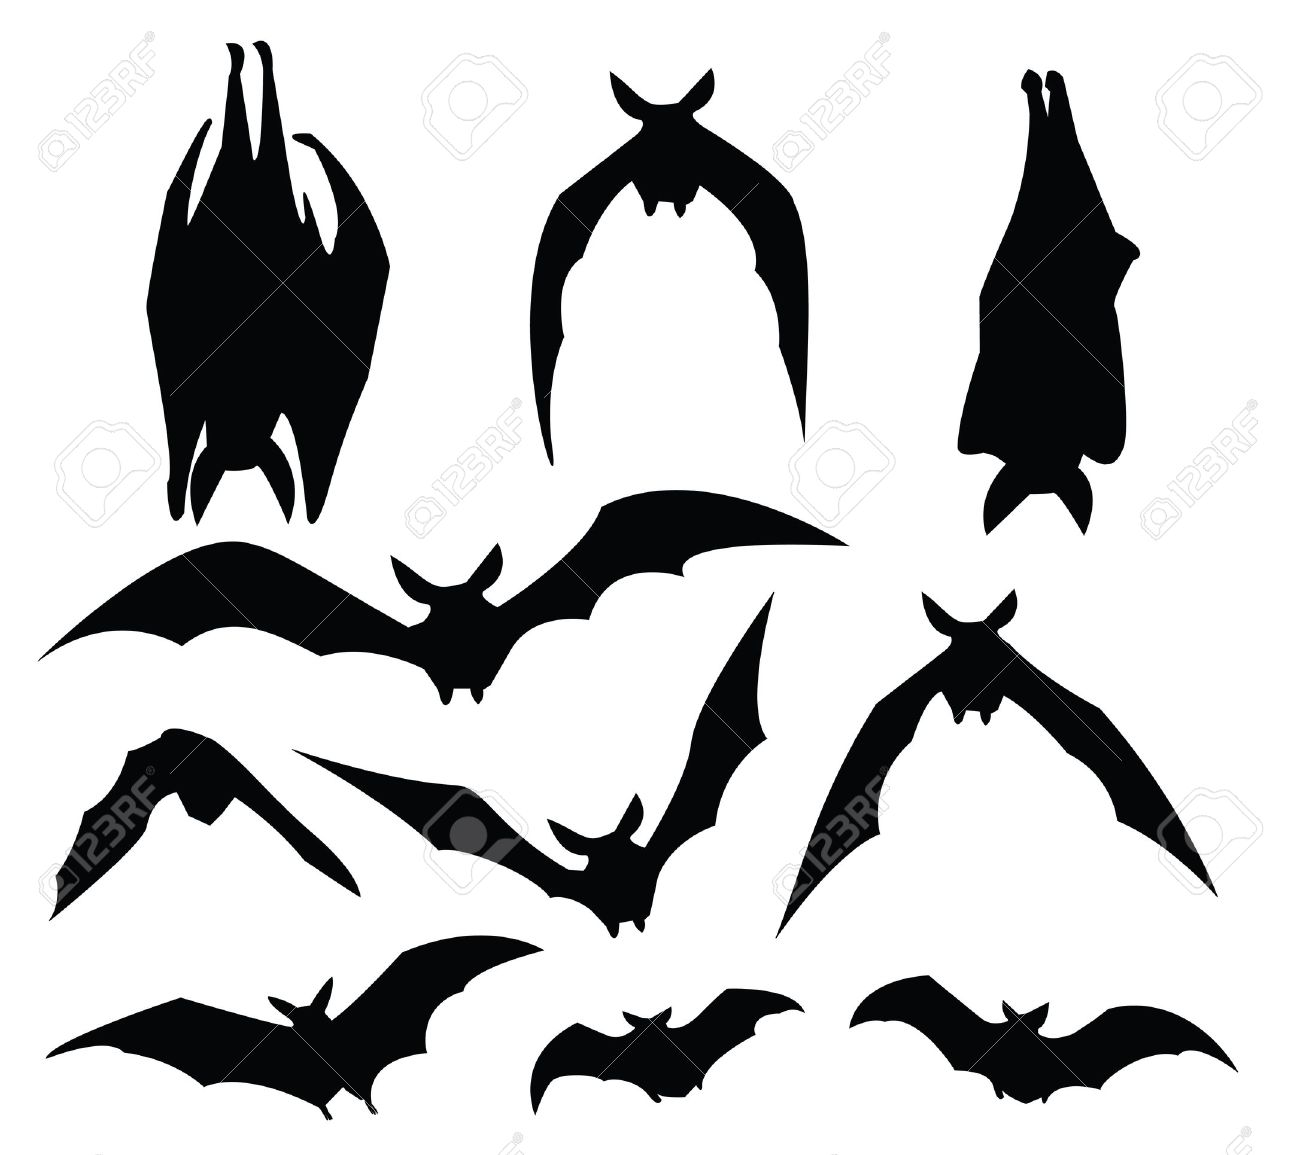 bat silhouette of various movement, for design usage. Stock Vector - 10599165